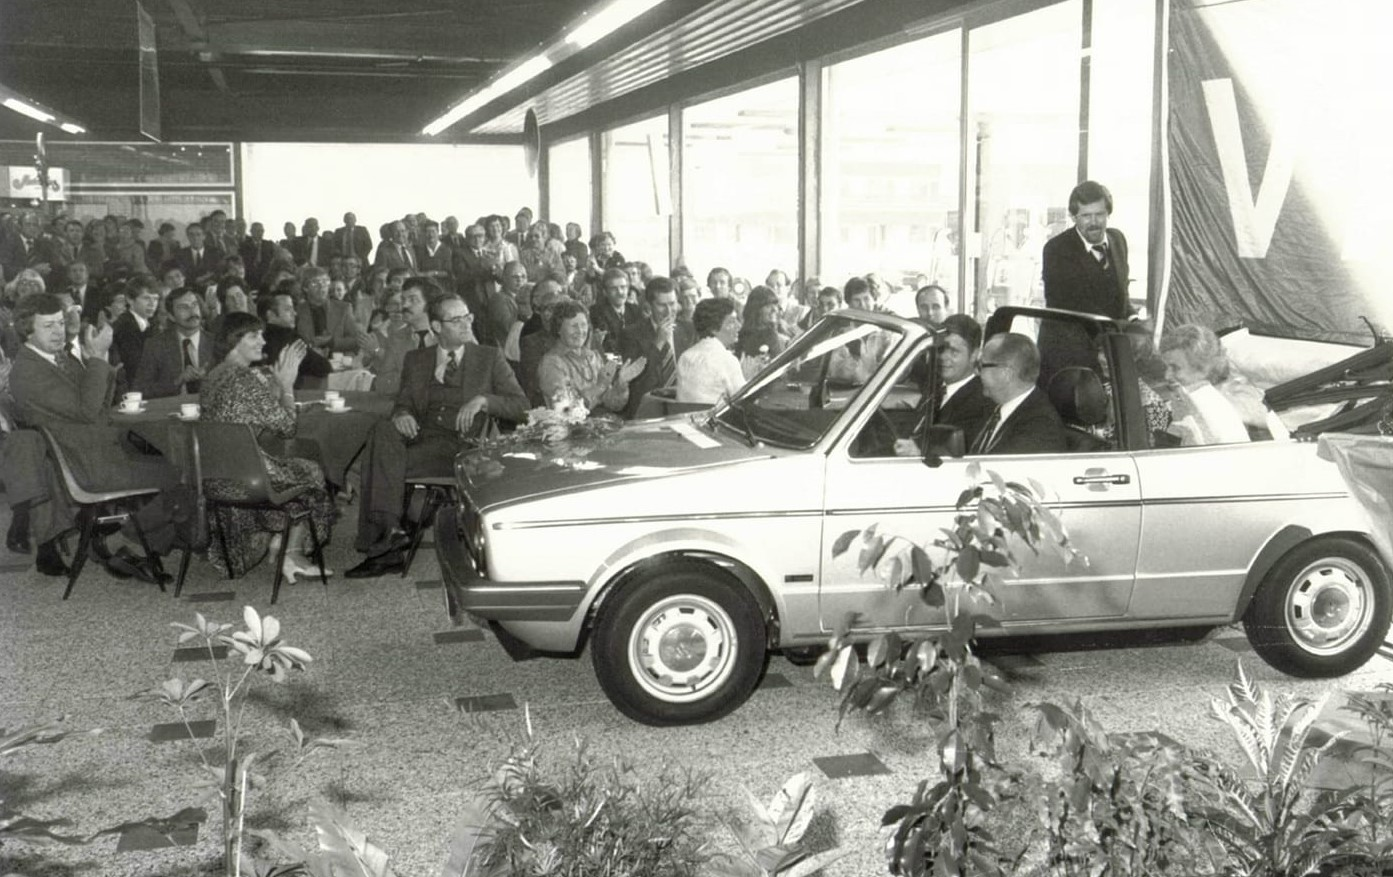 Volkswagen-dealer-garage-de-Waal-in-Tiel--1979-introductie-Golf-Cabrio